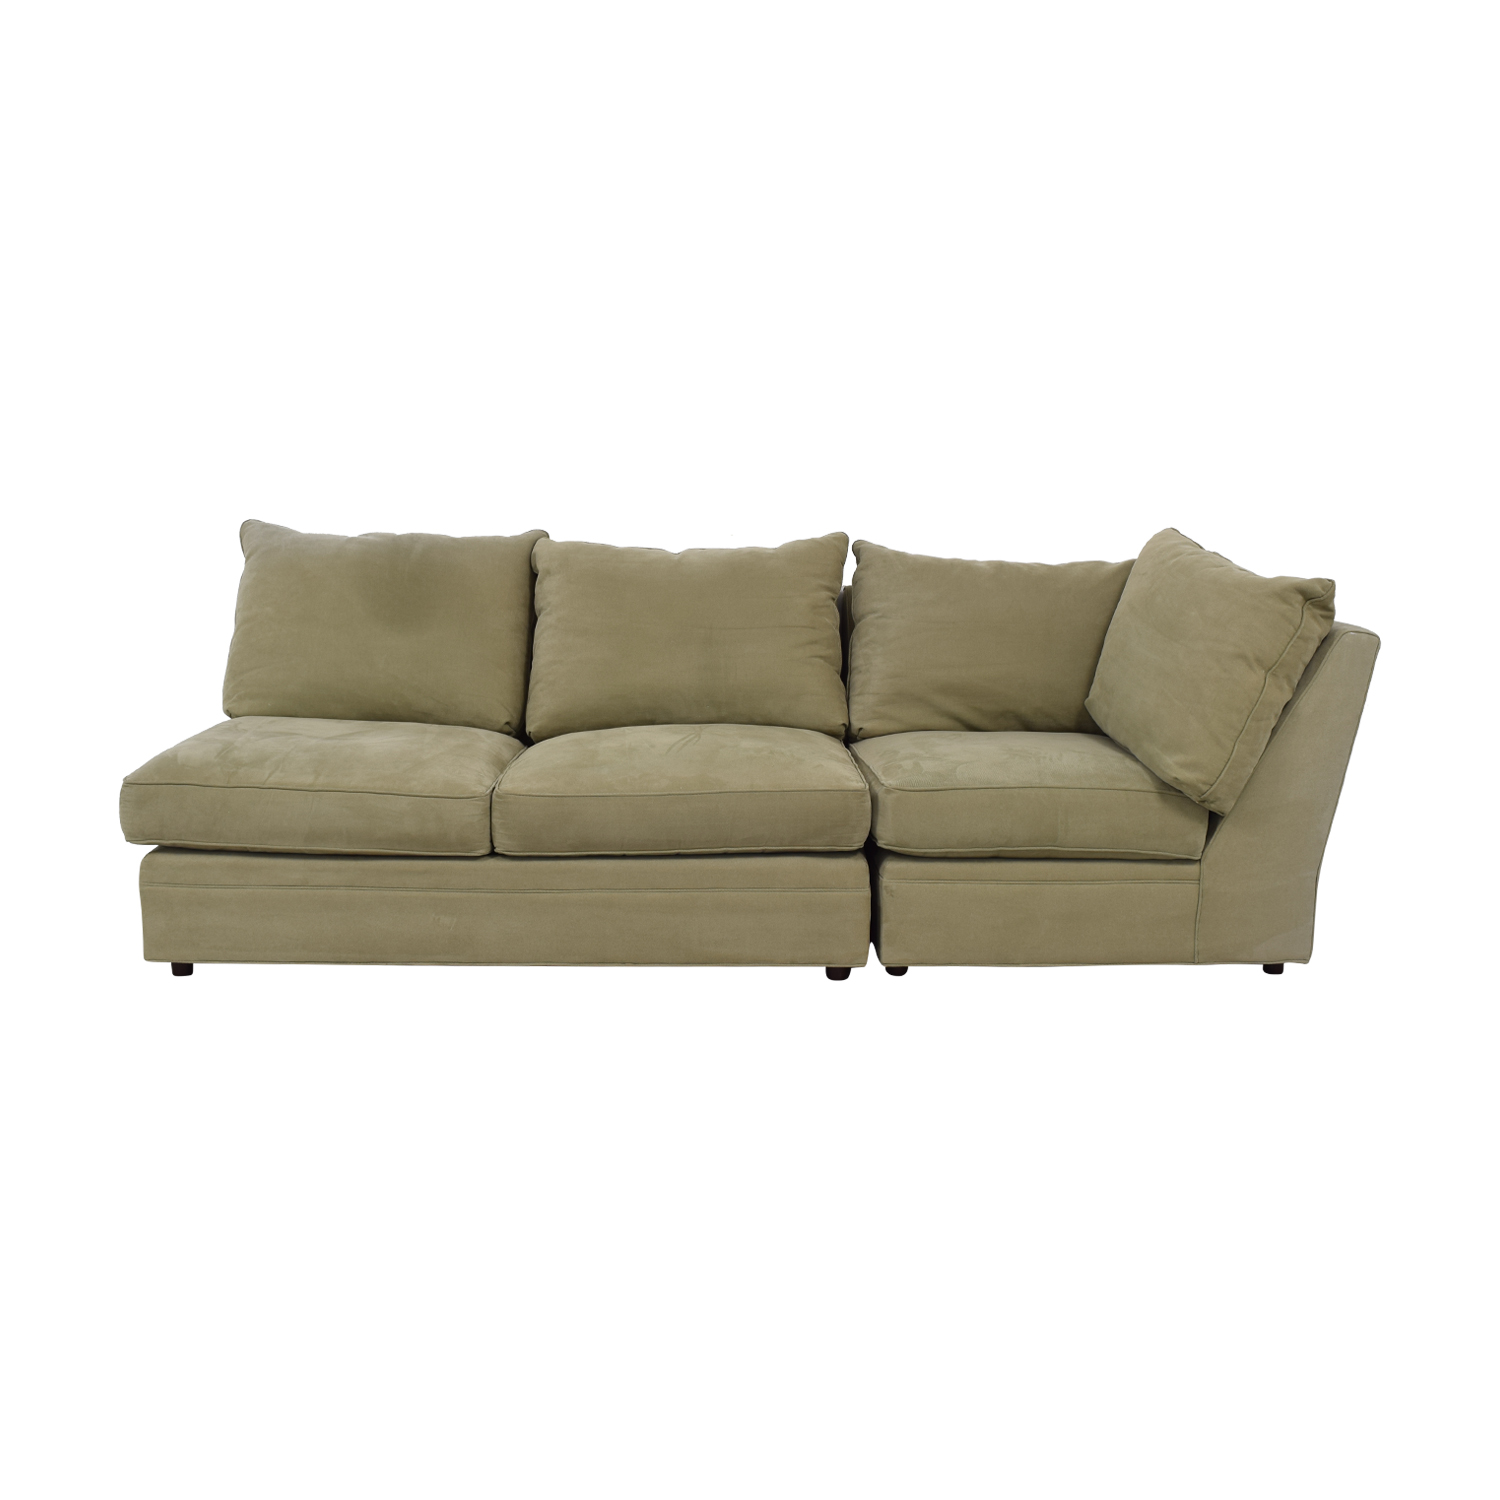 sofa arm buy bed online uk 69 off macy s beige right facing two piece sofas sectionals